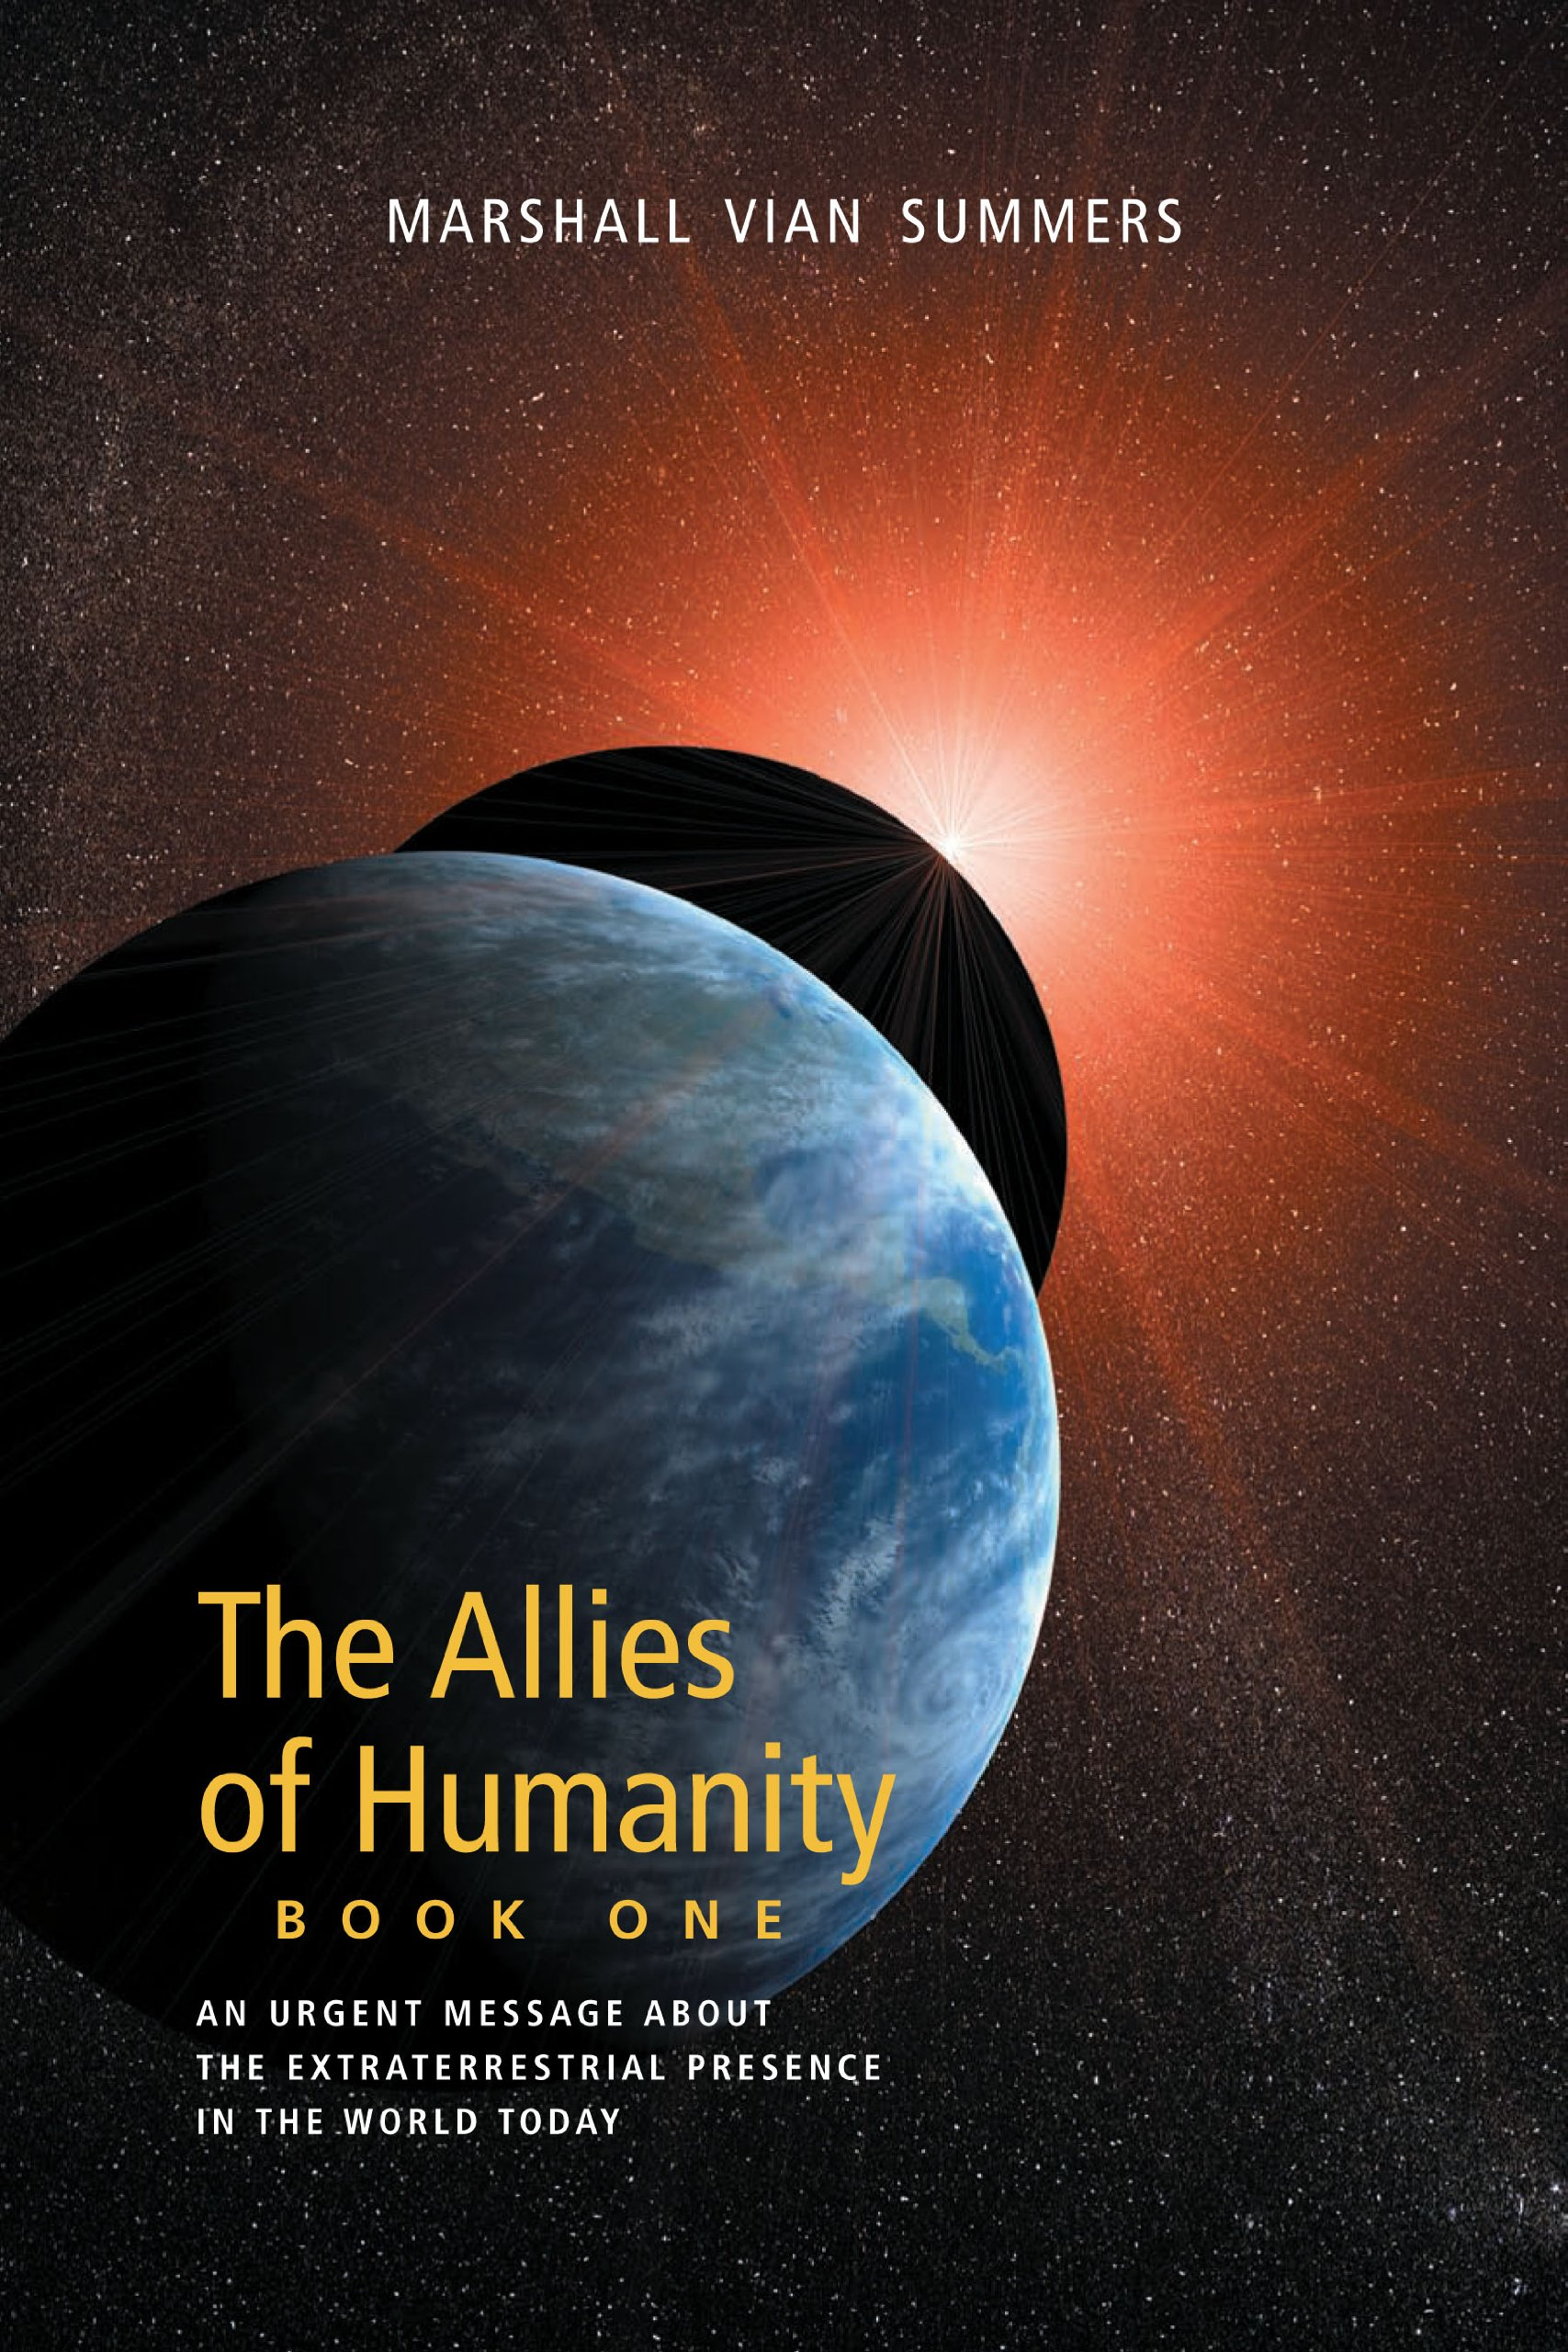 The Allies of Humanity, Book One (The Allies of Humanity Book One)